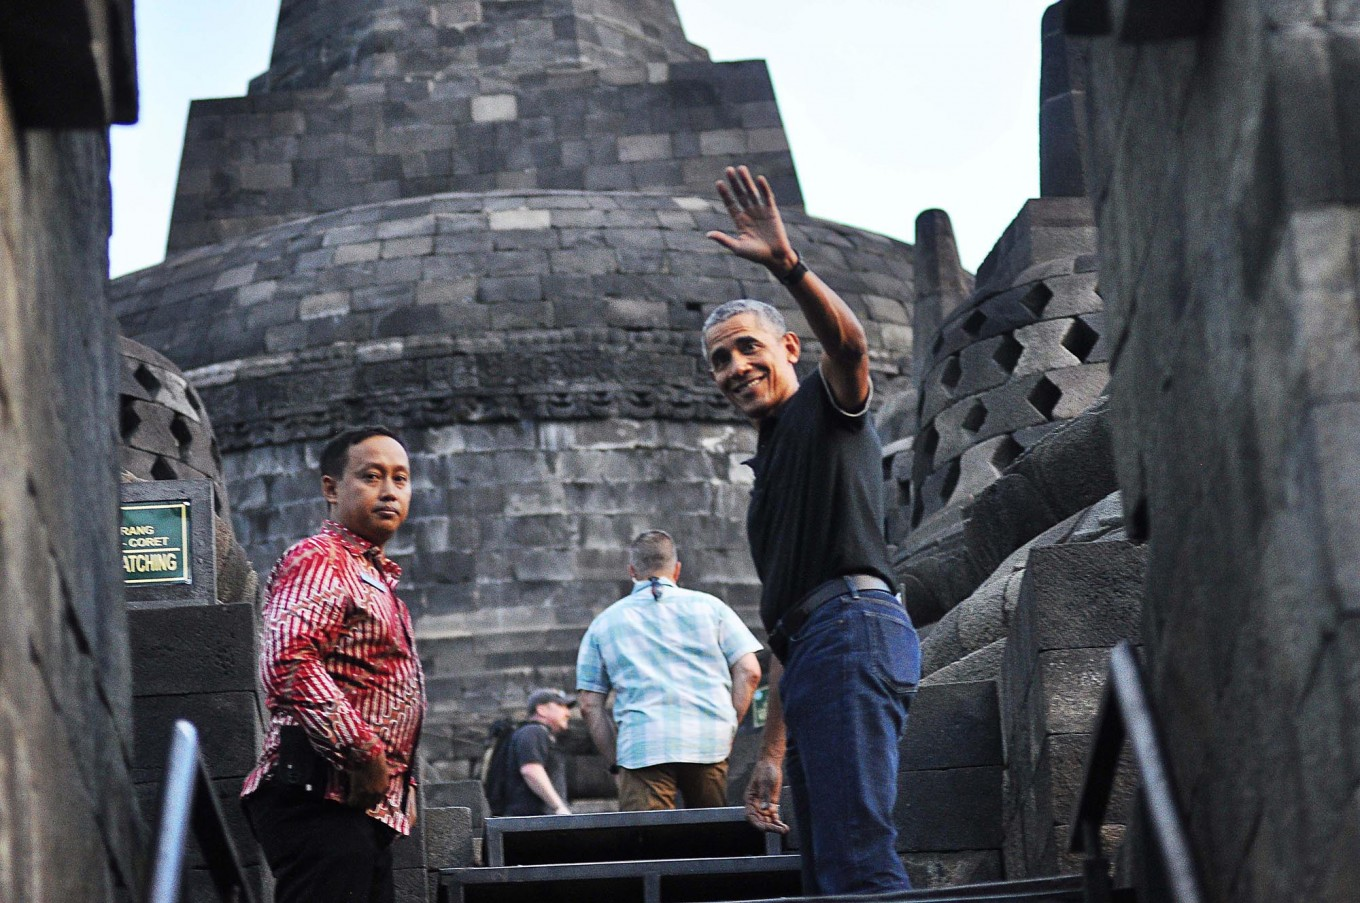 Borobudur tourism icon to receive another boost